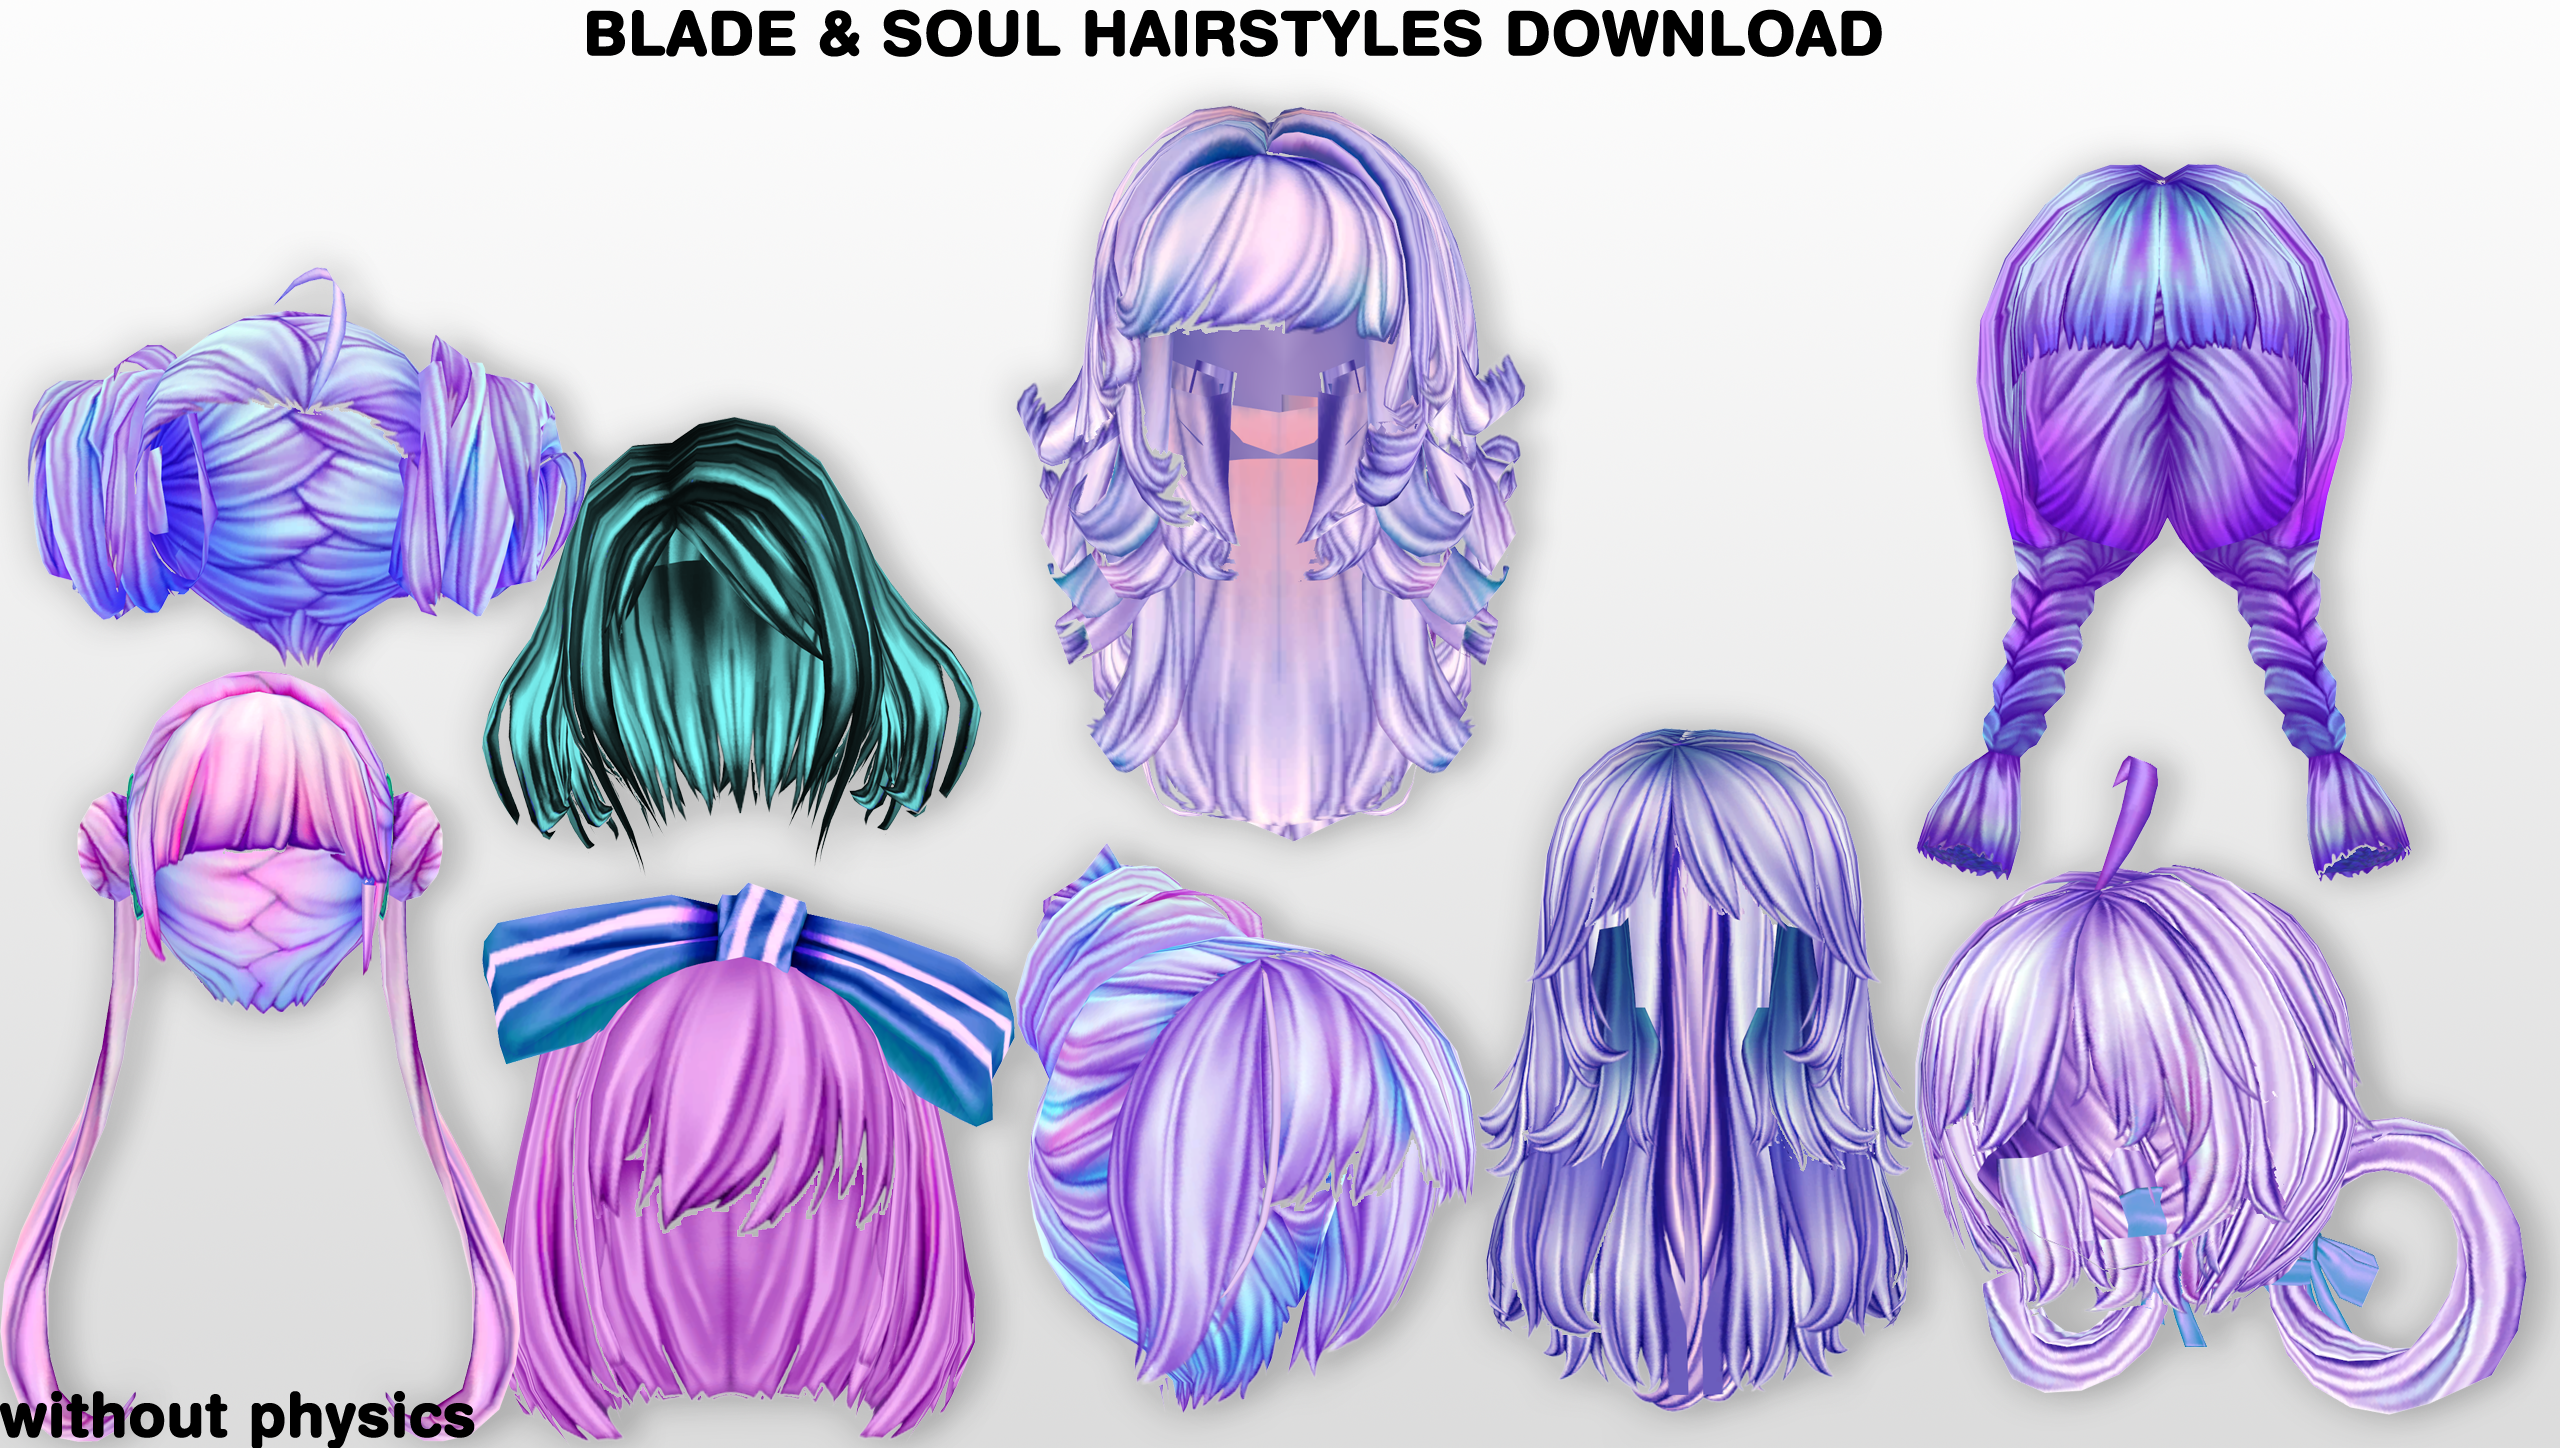 Mmd Bns Hairstyles Dl By Unluckycandyfox On Deviantart